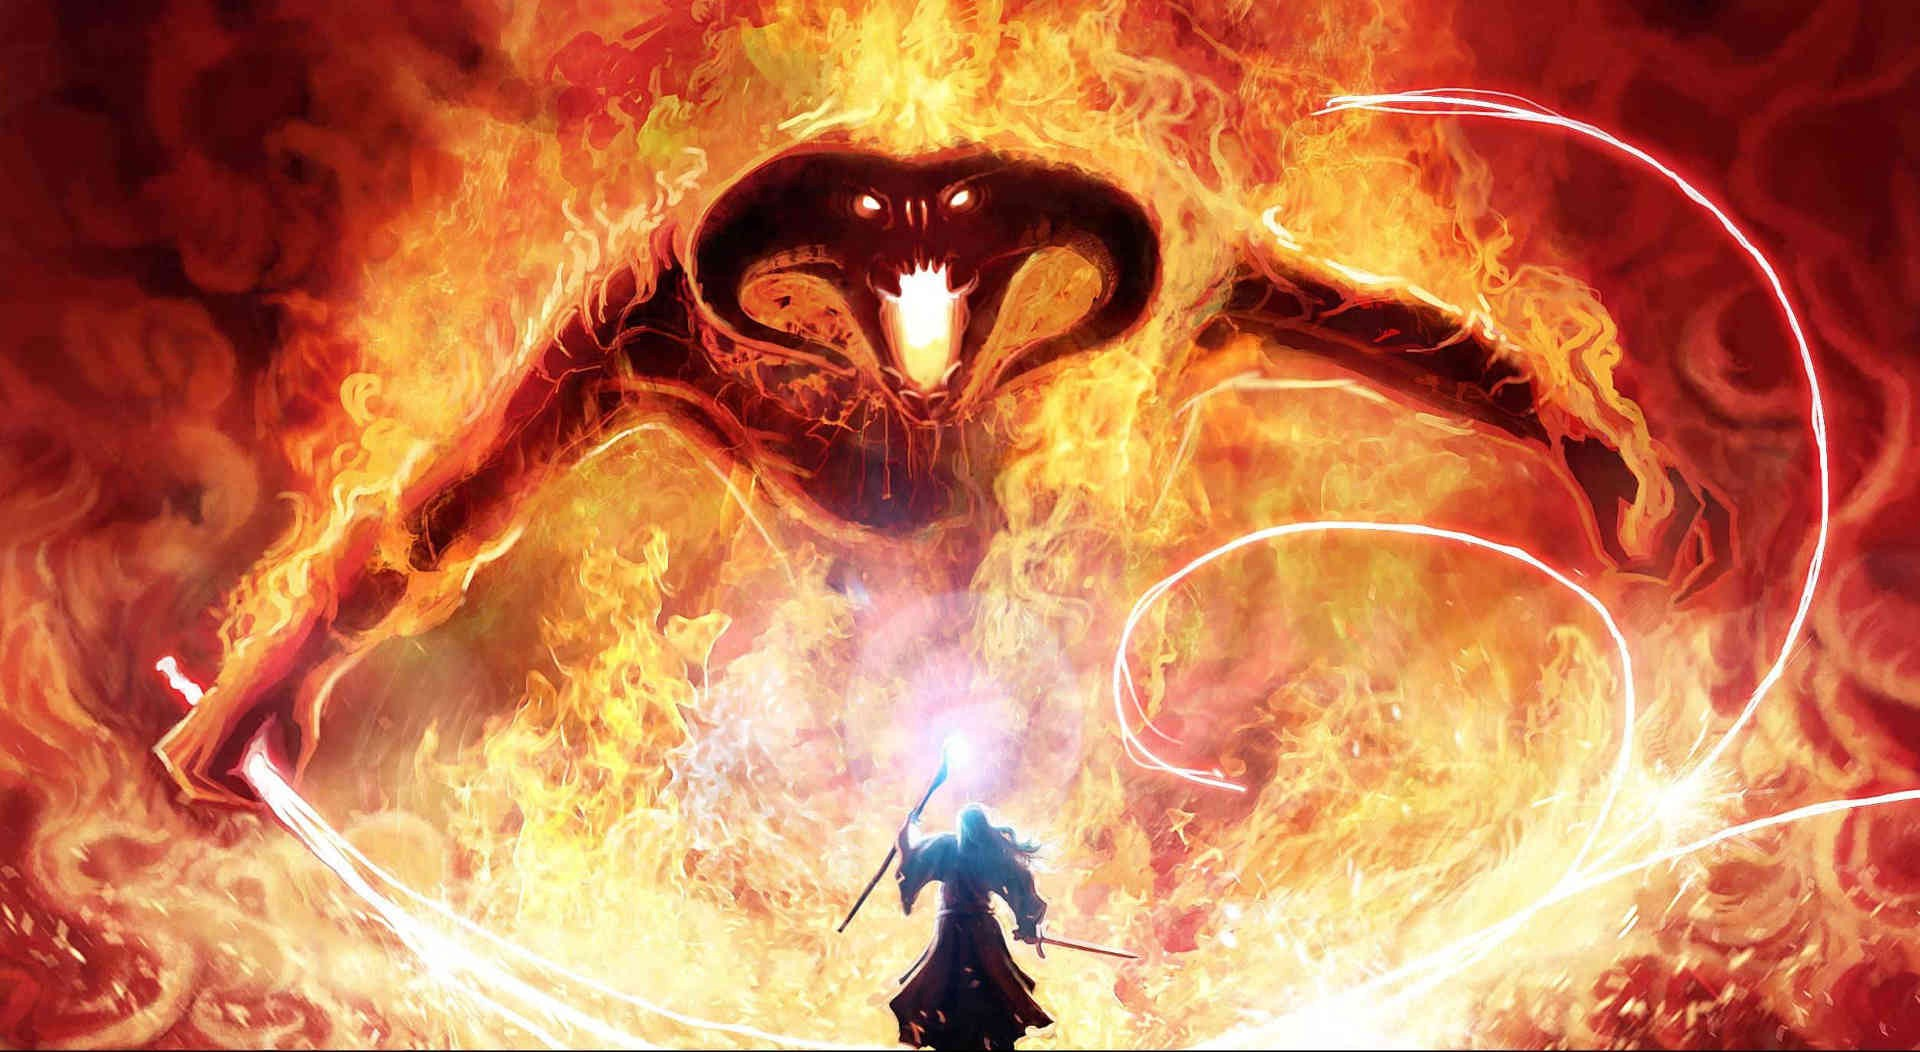 The Influence Of Dante S Inferno On J R R Tolkien S The Lord Of The Rings By Andrew Dagher Medium